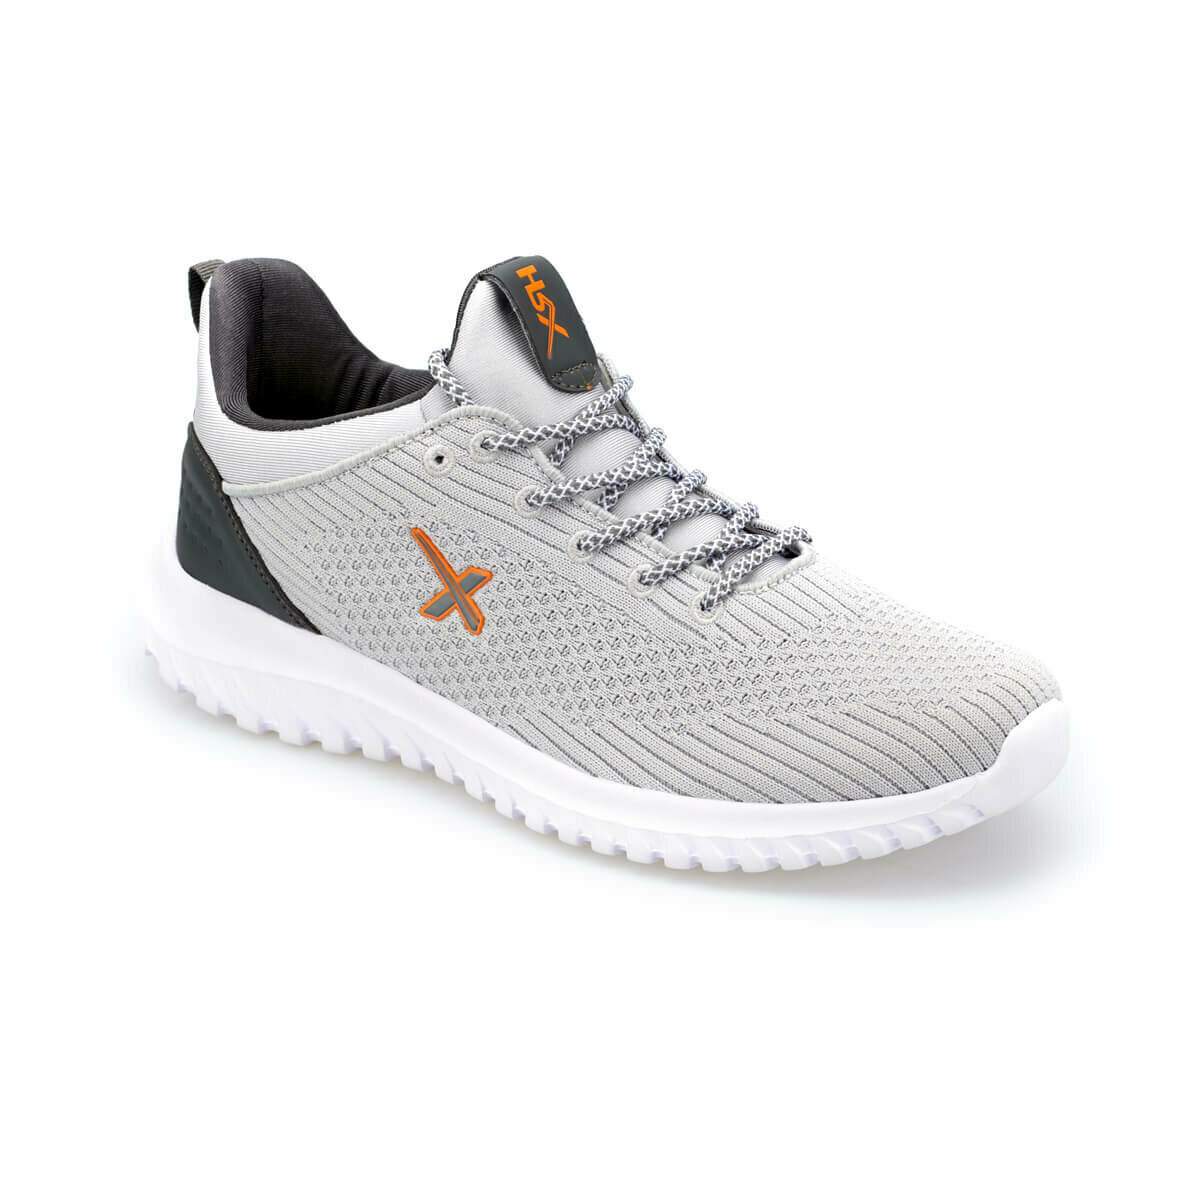 FLO RAY Light Gray Men 'S Comfort Shoes KINETIX